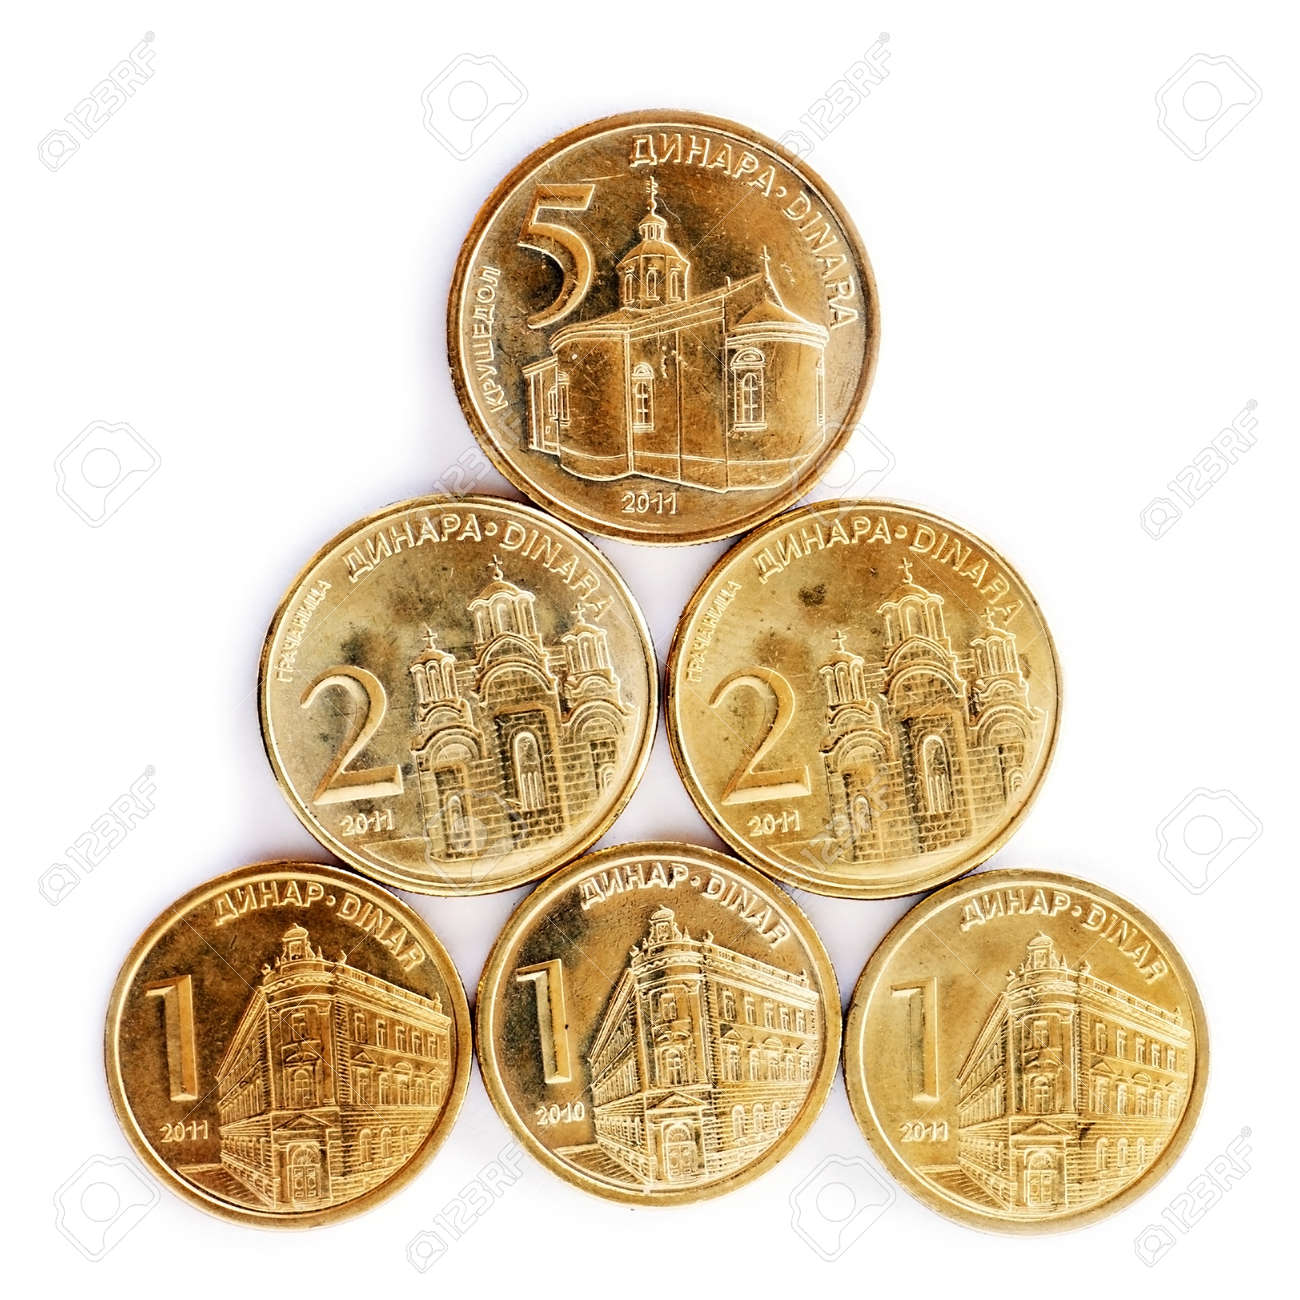 various serbian dinars coins over white background Stock Photo - 12467250